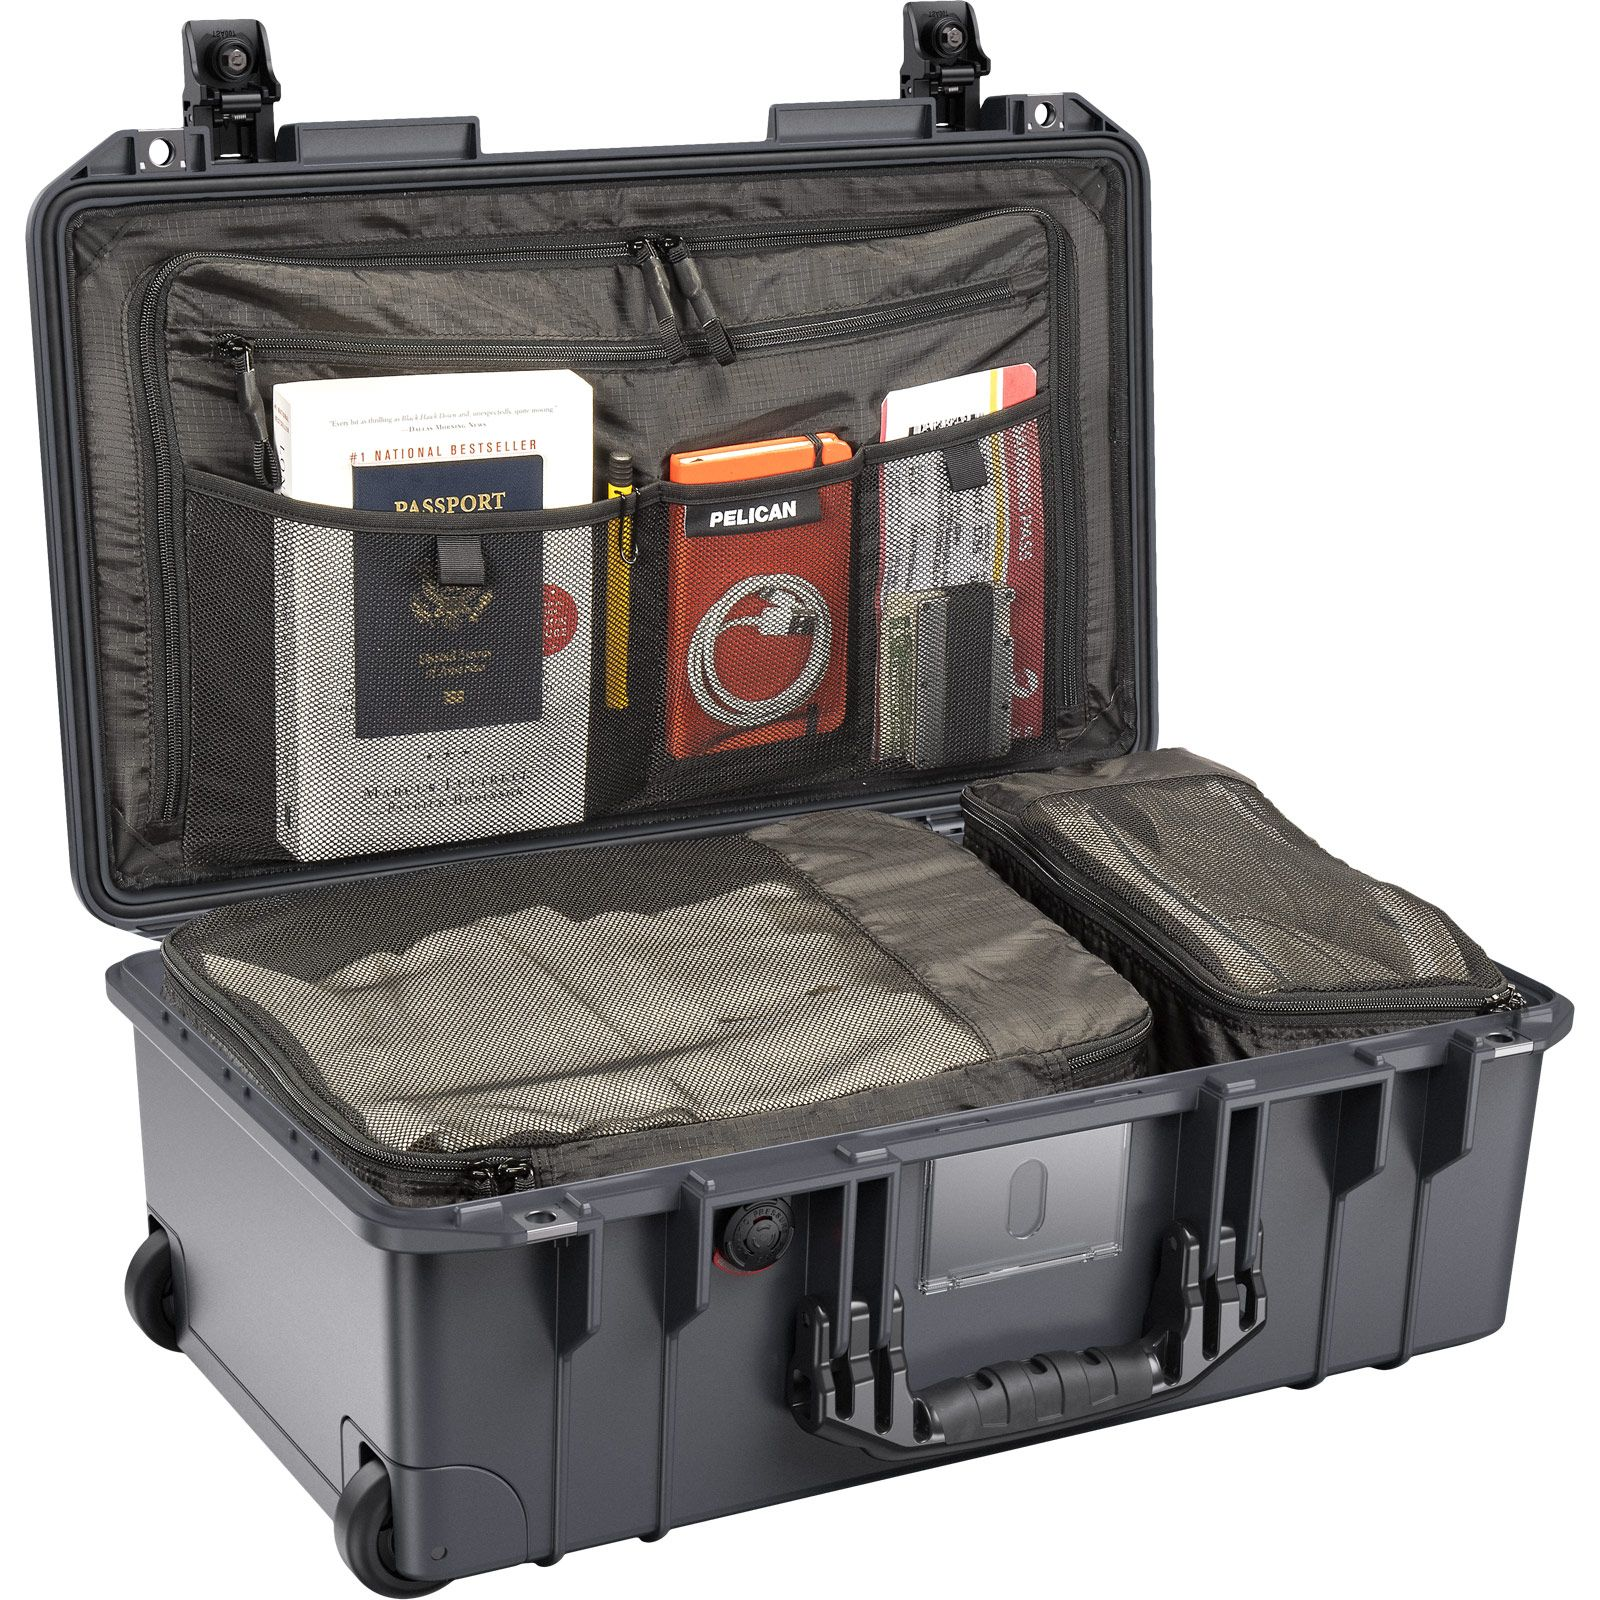 1535TRVL Air Travel Case Pelican Official Store Travel